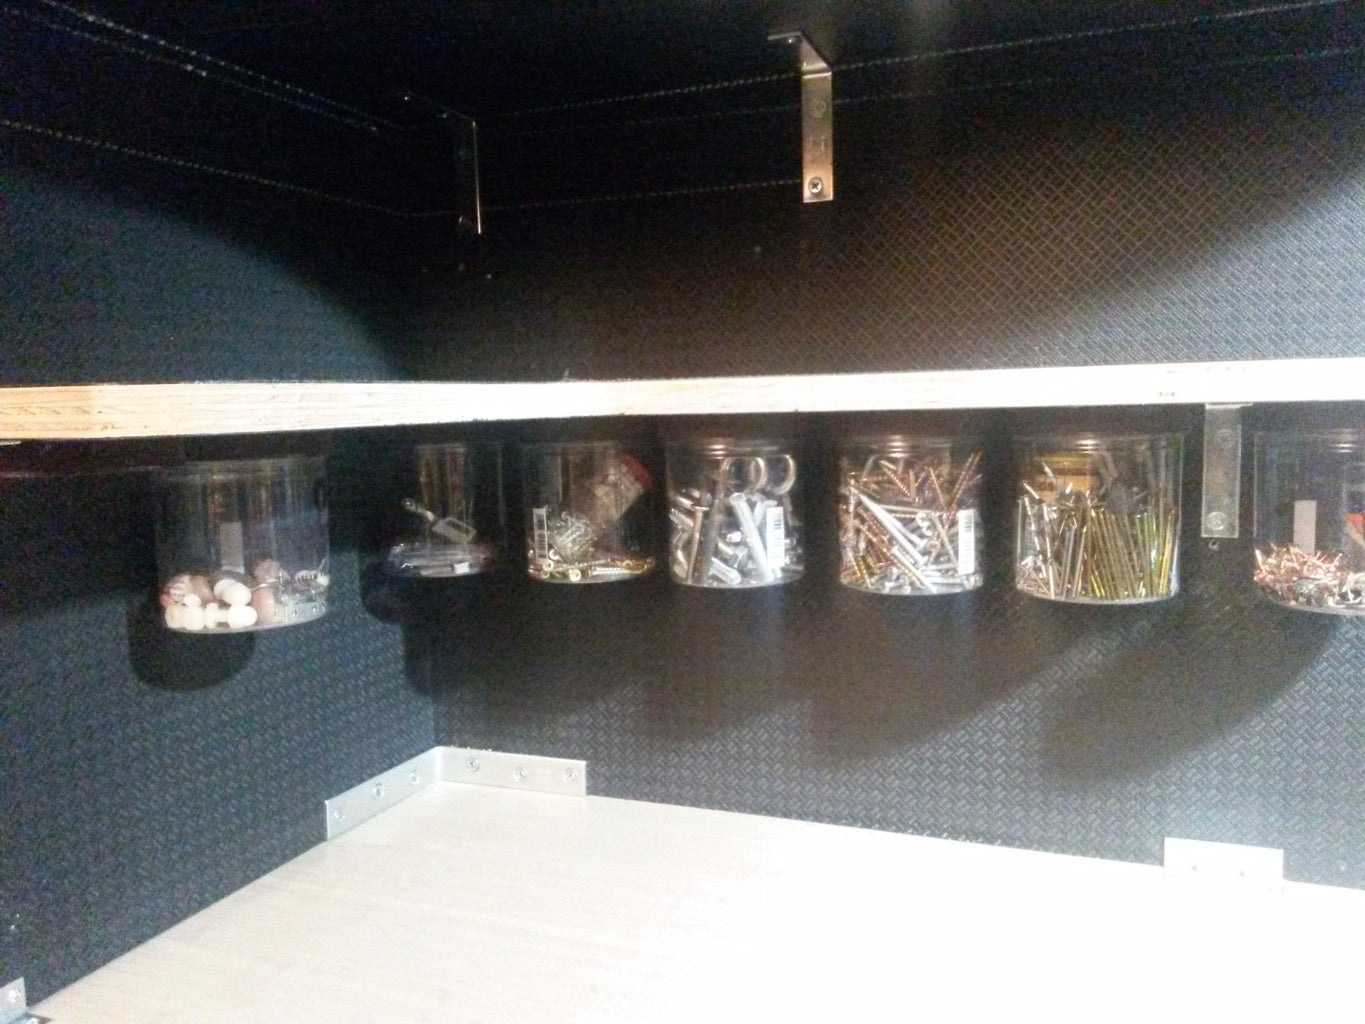 B: Hanging Storage Containers